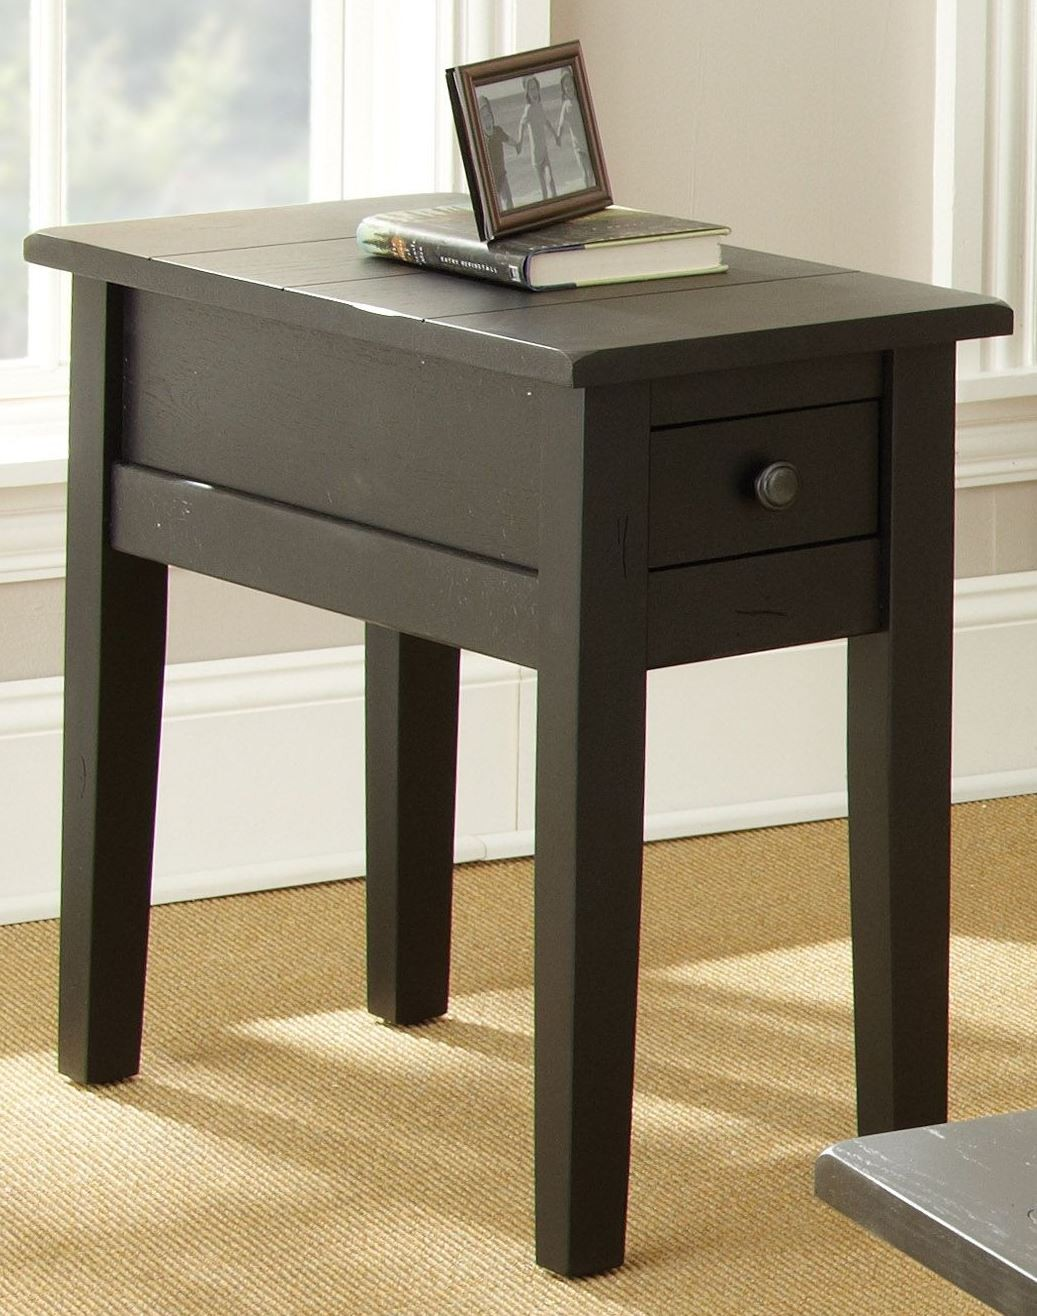 Liberty Antique Black Chairside End Table From Steve